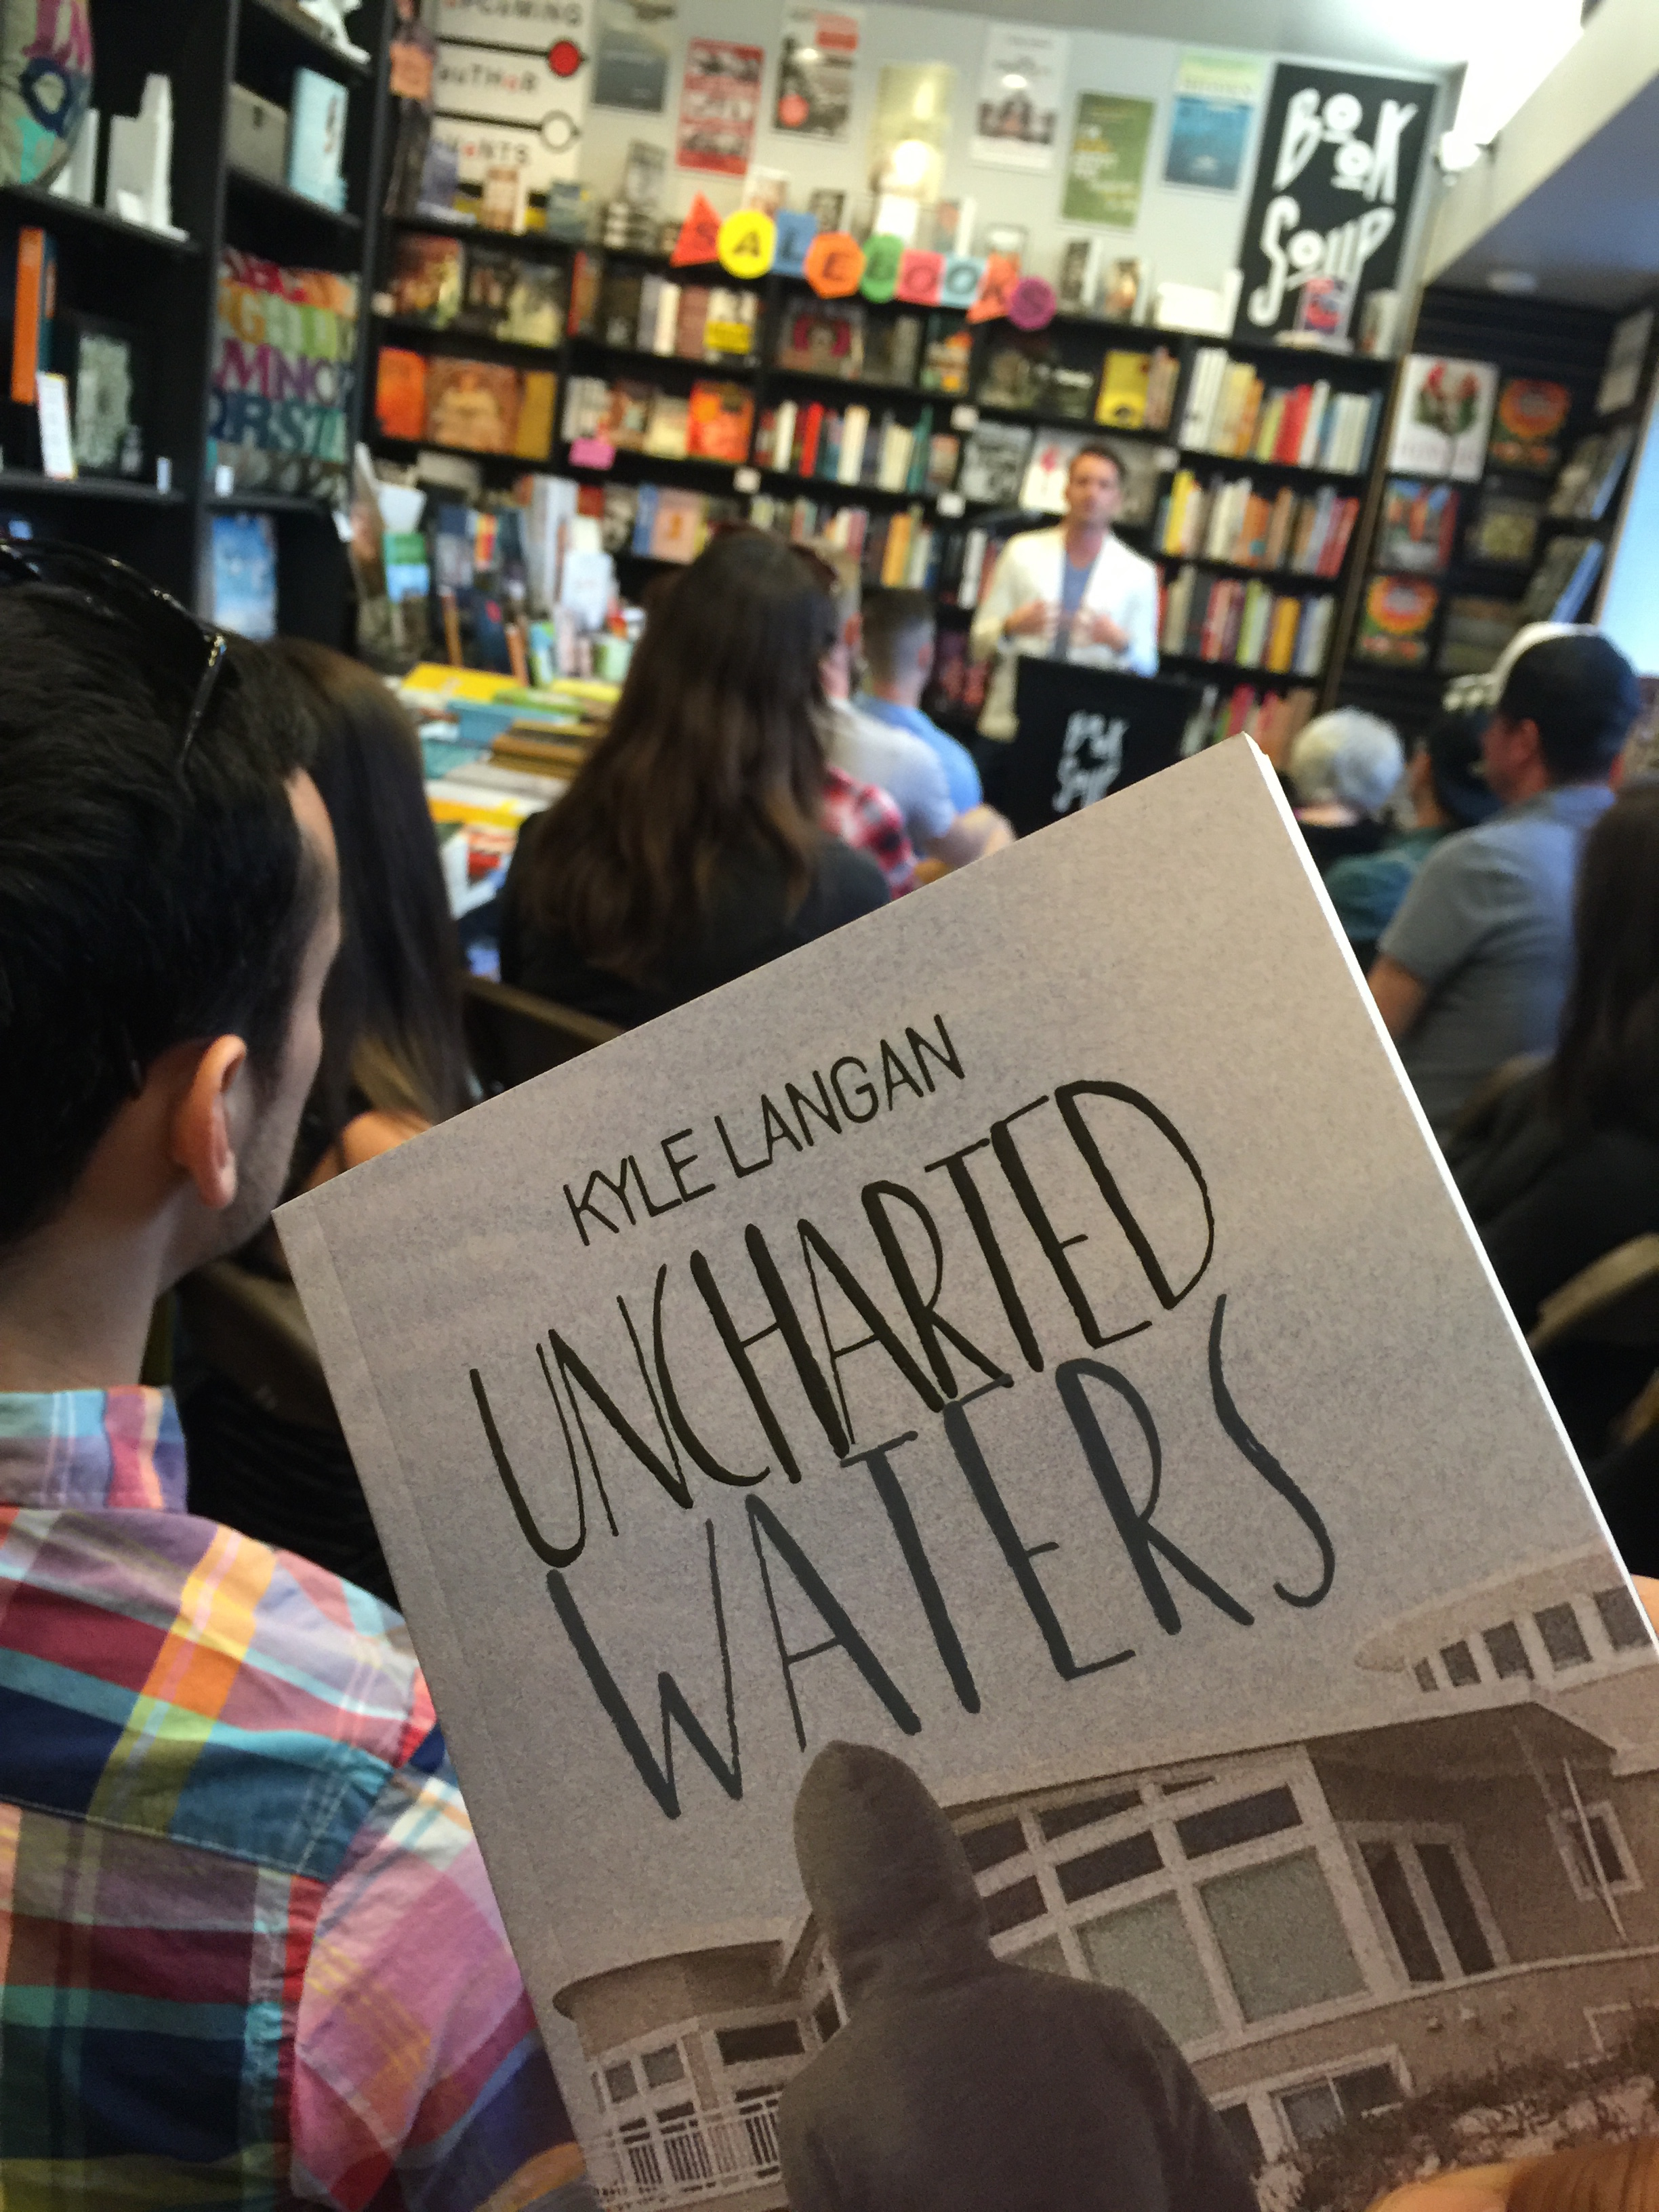 Uncharted Waters Book Signing